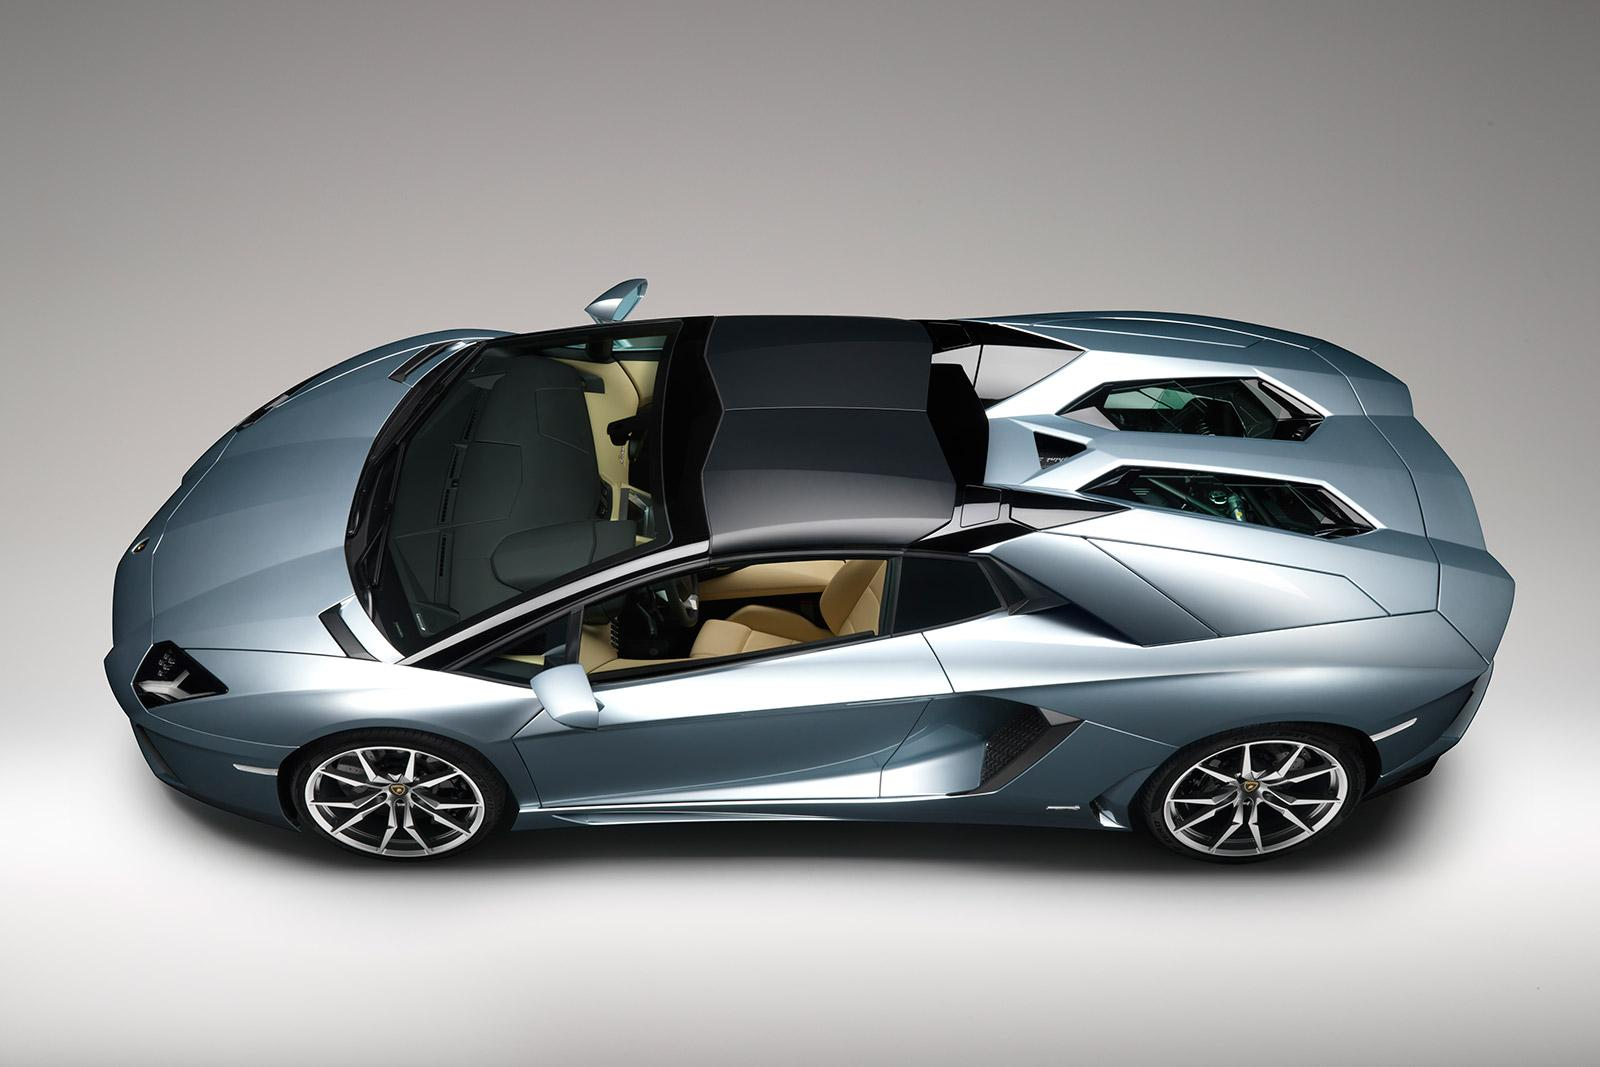 Lamborghini Aventador LP 700-4 Roadster - Car Body Design #170097 ...